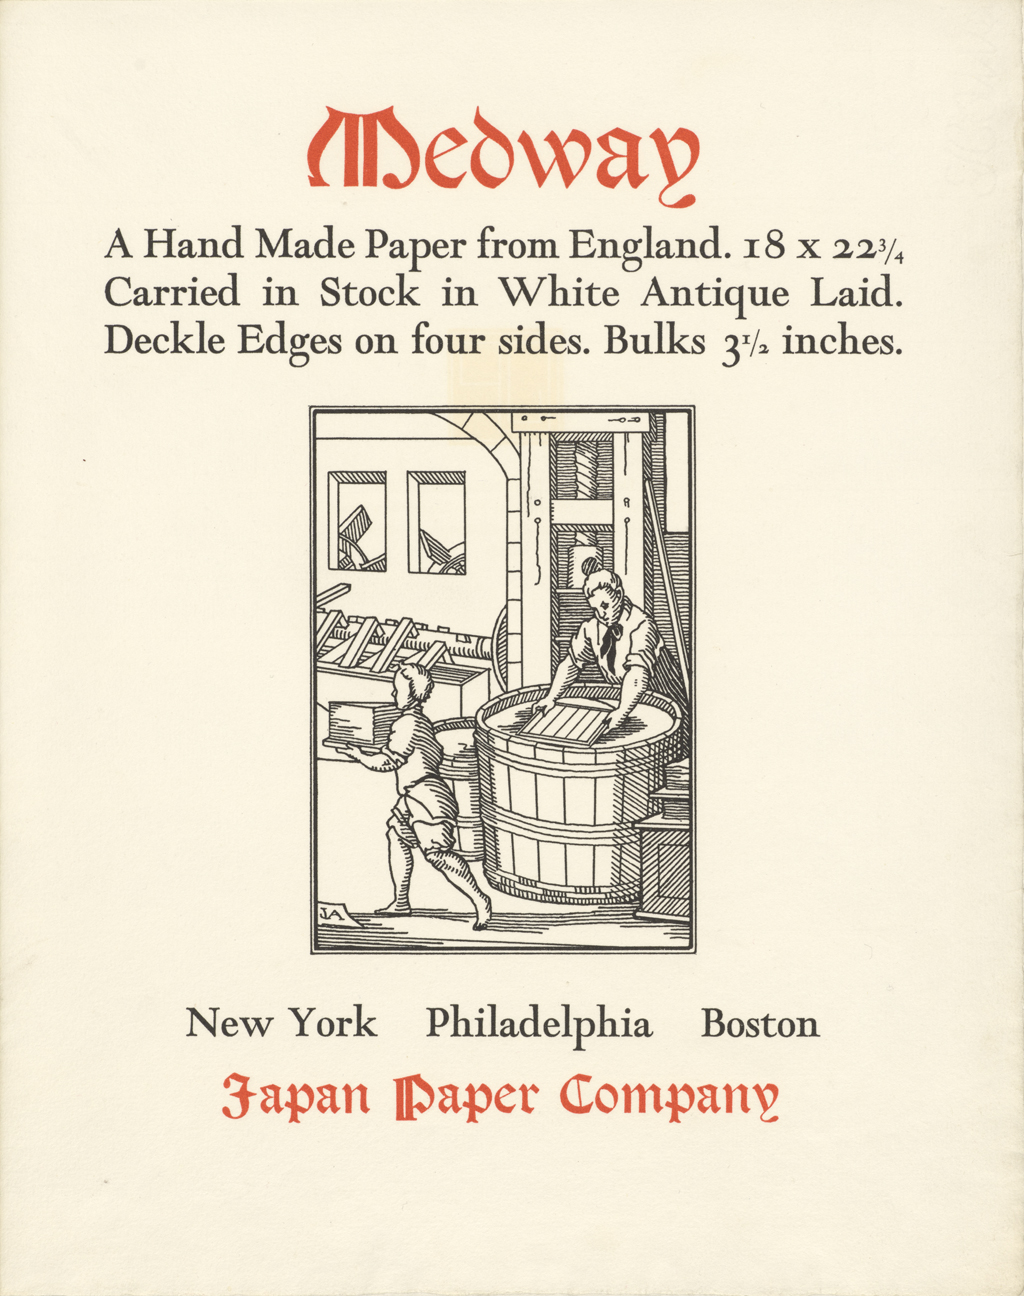 Medway (Japan Paper Company). Promotion designed and printed by Carl Purington Rollins; lettering and illustration by W.A. Dwiggins.